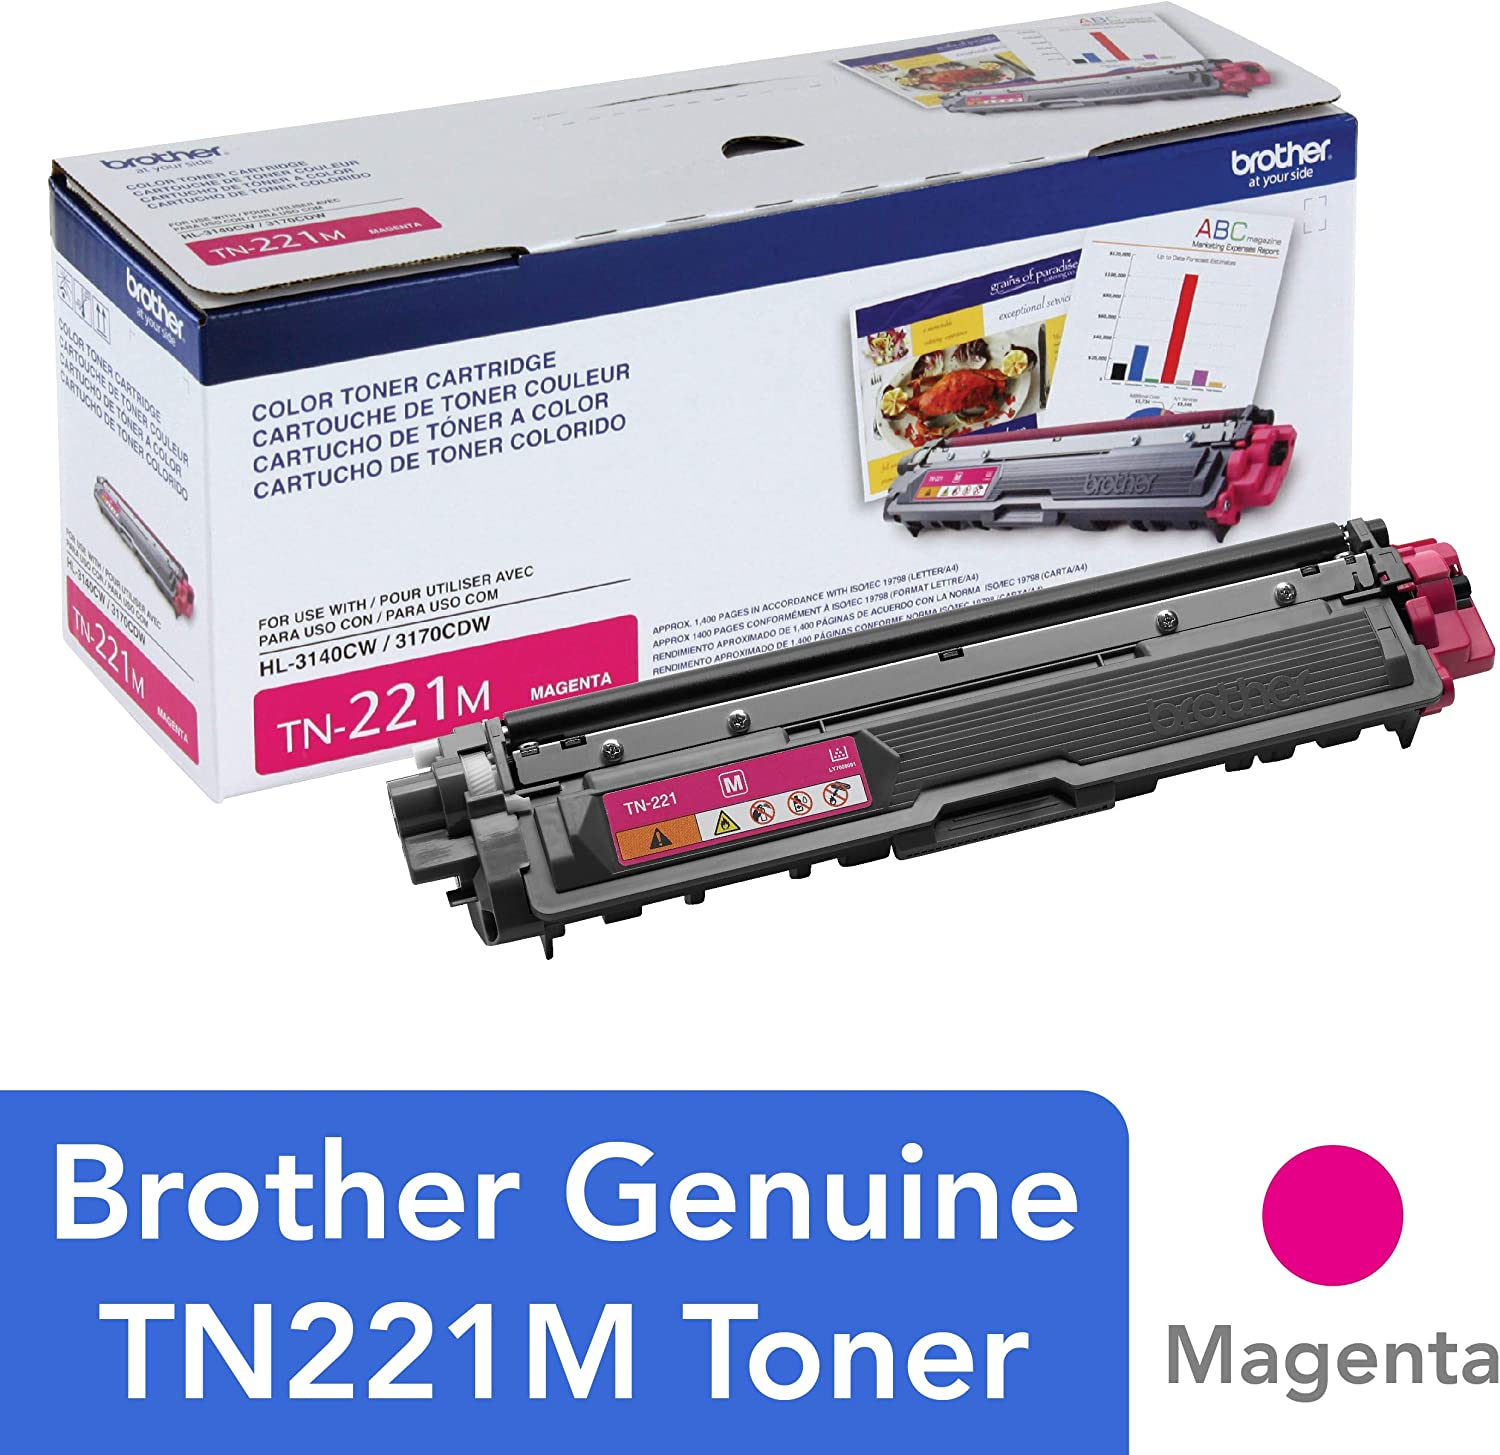 Brother TN-221M DCP-9015 9020 HL-3140 3150 3170 3180 MFC-9130 9140 9330 9340 Toner Cartridge (Magenta) in Retail Packaging